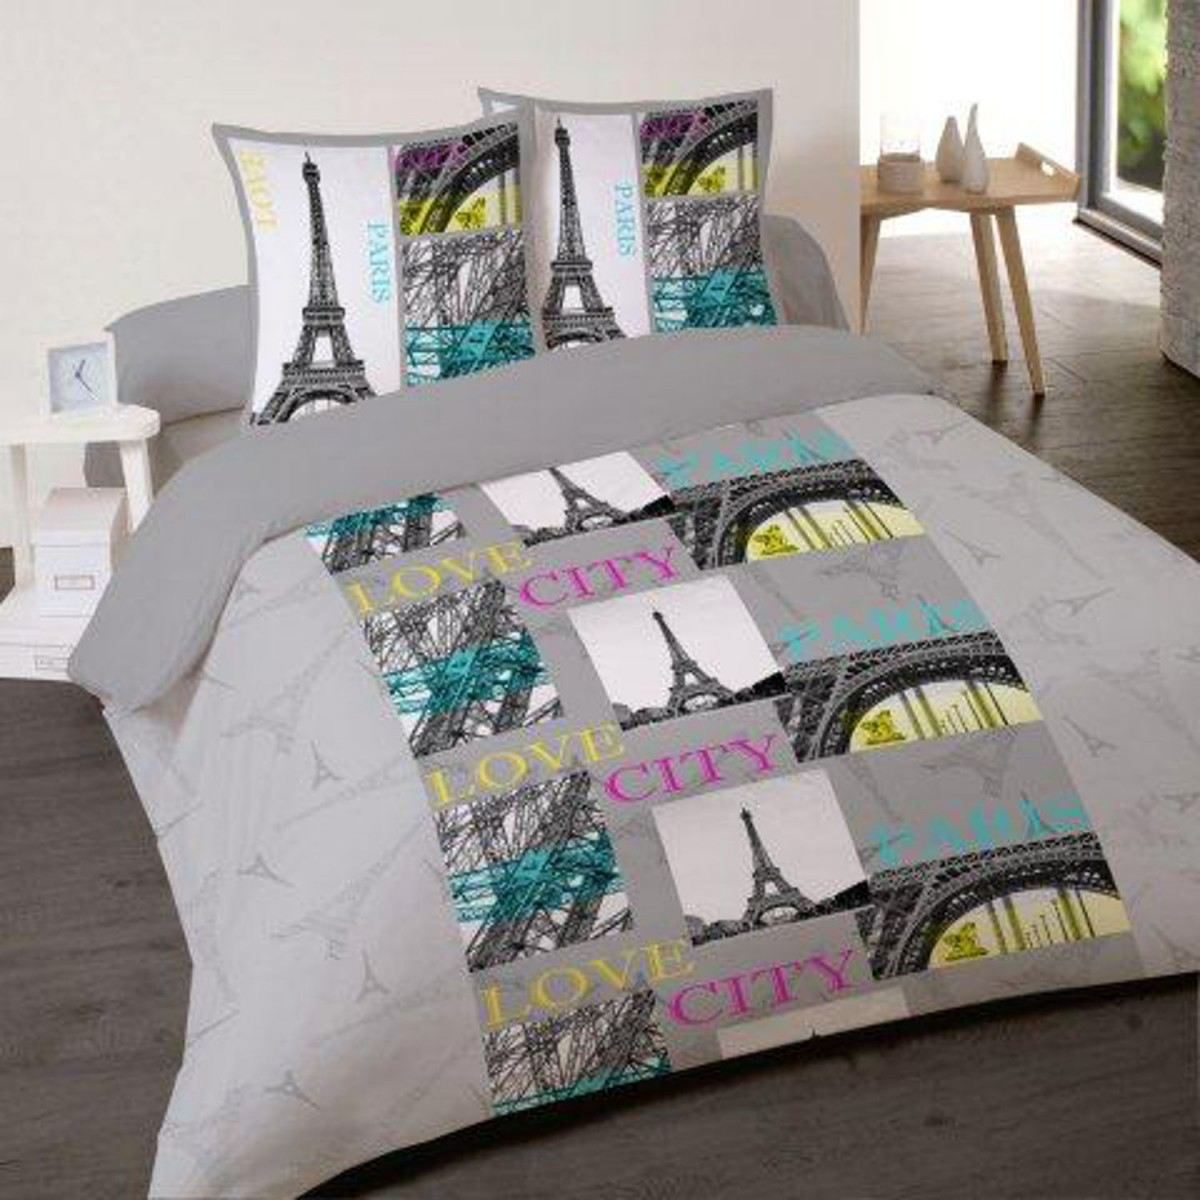 Housse de couette paris city 220 240 cm 2 taies d for Housse de couette paris 1 place